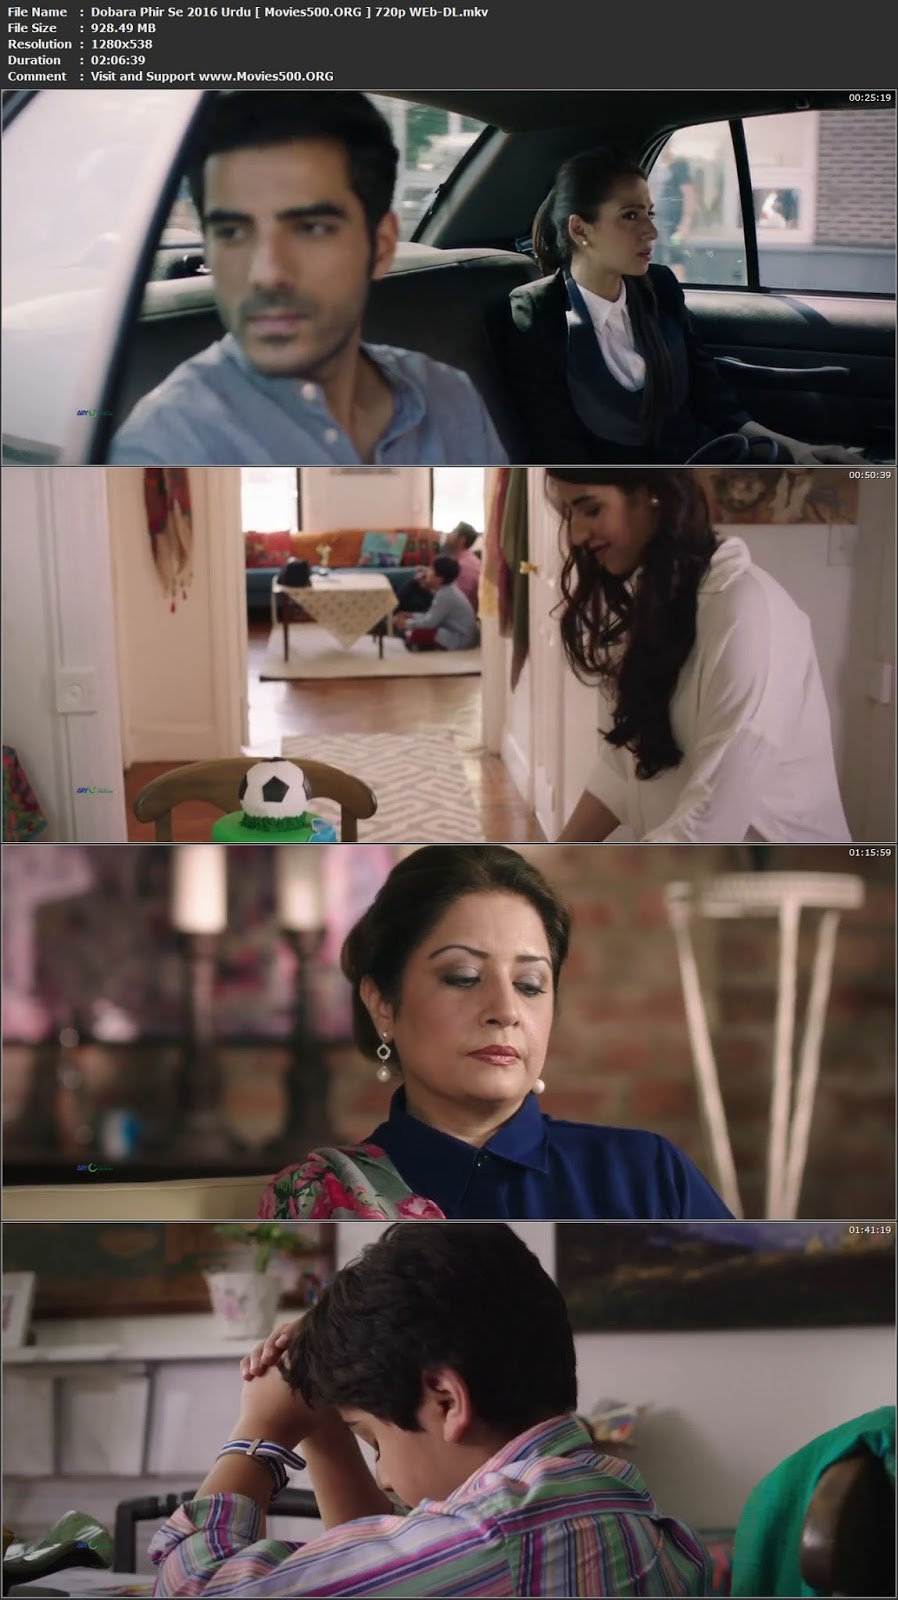 Dobara Phir Se 2016 Urdu Pakistani Download WEB DL 720p at sandrastclairphotography.com